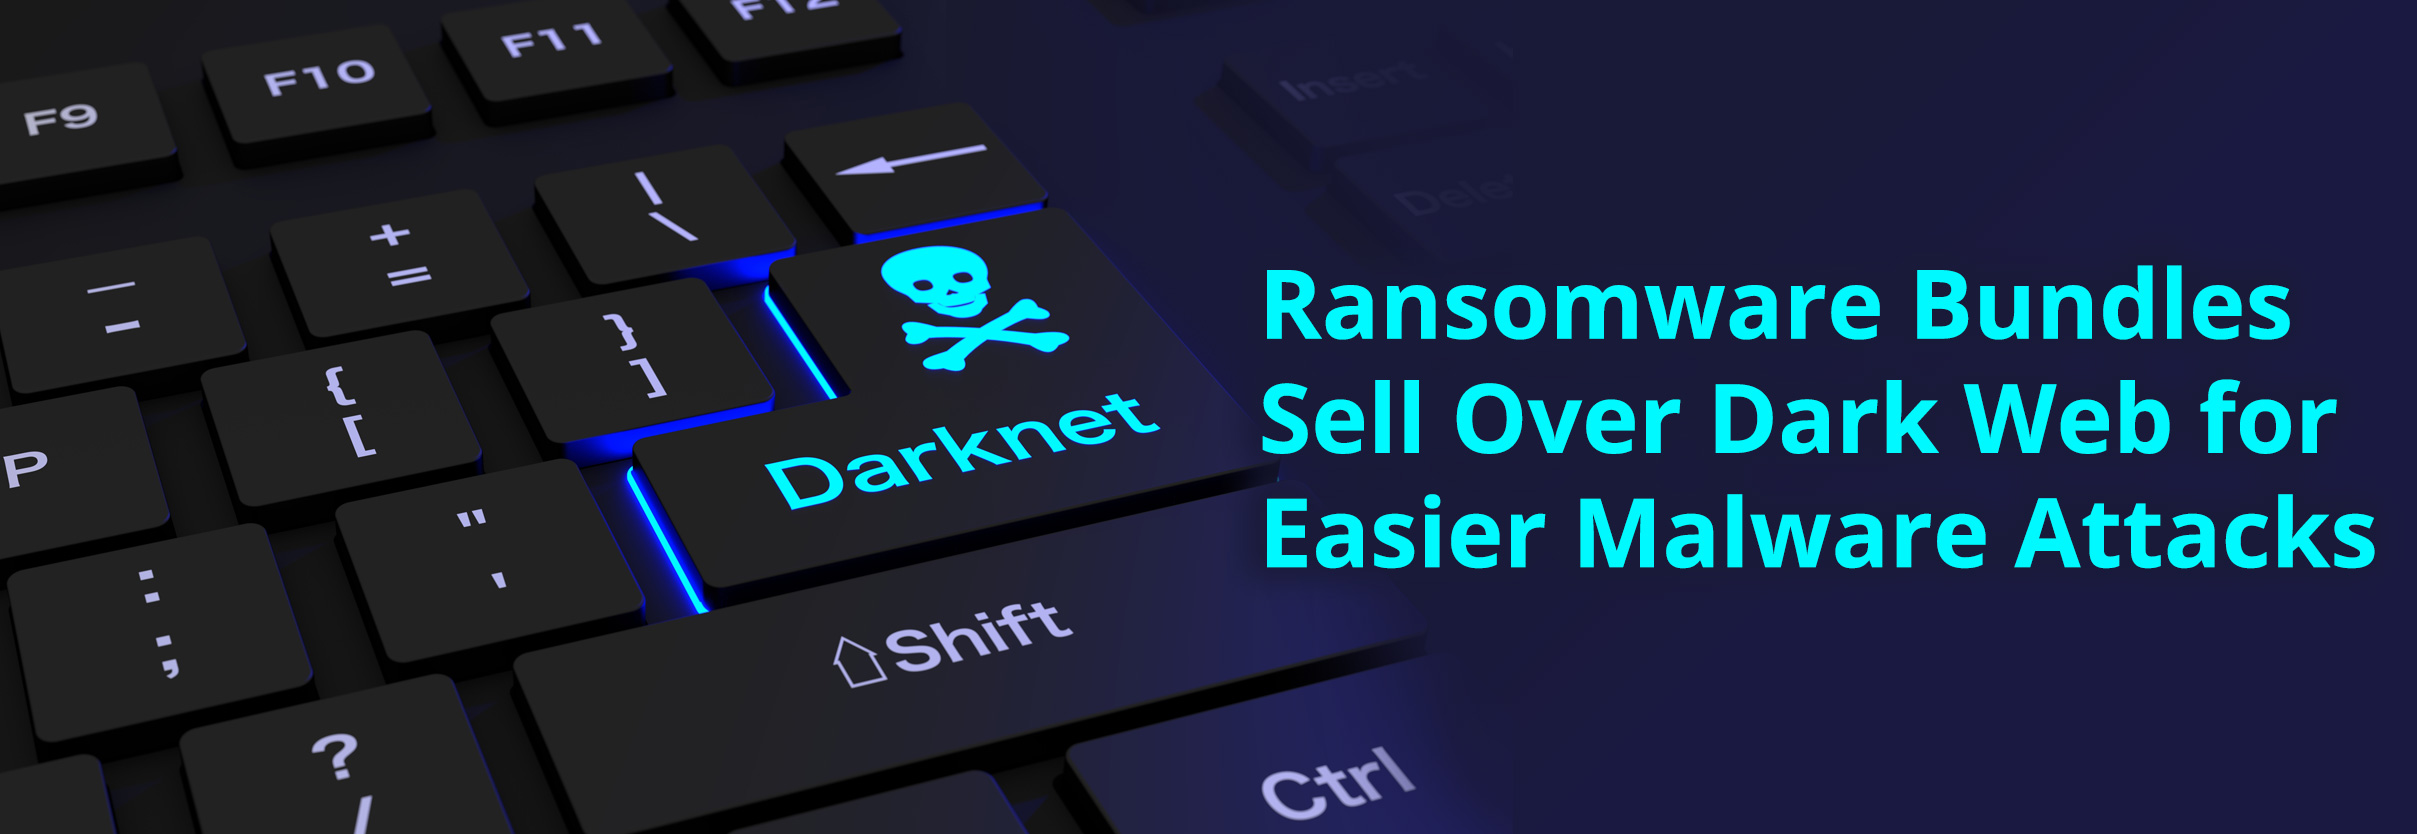 Ransomware Bundles Sell Over Dark Web For Easier Malware Attacks